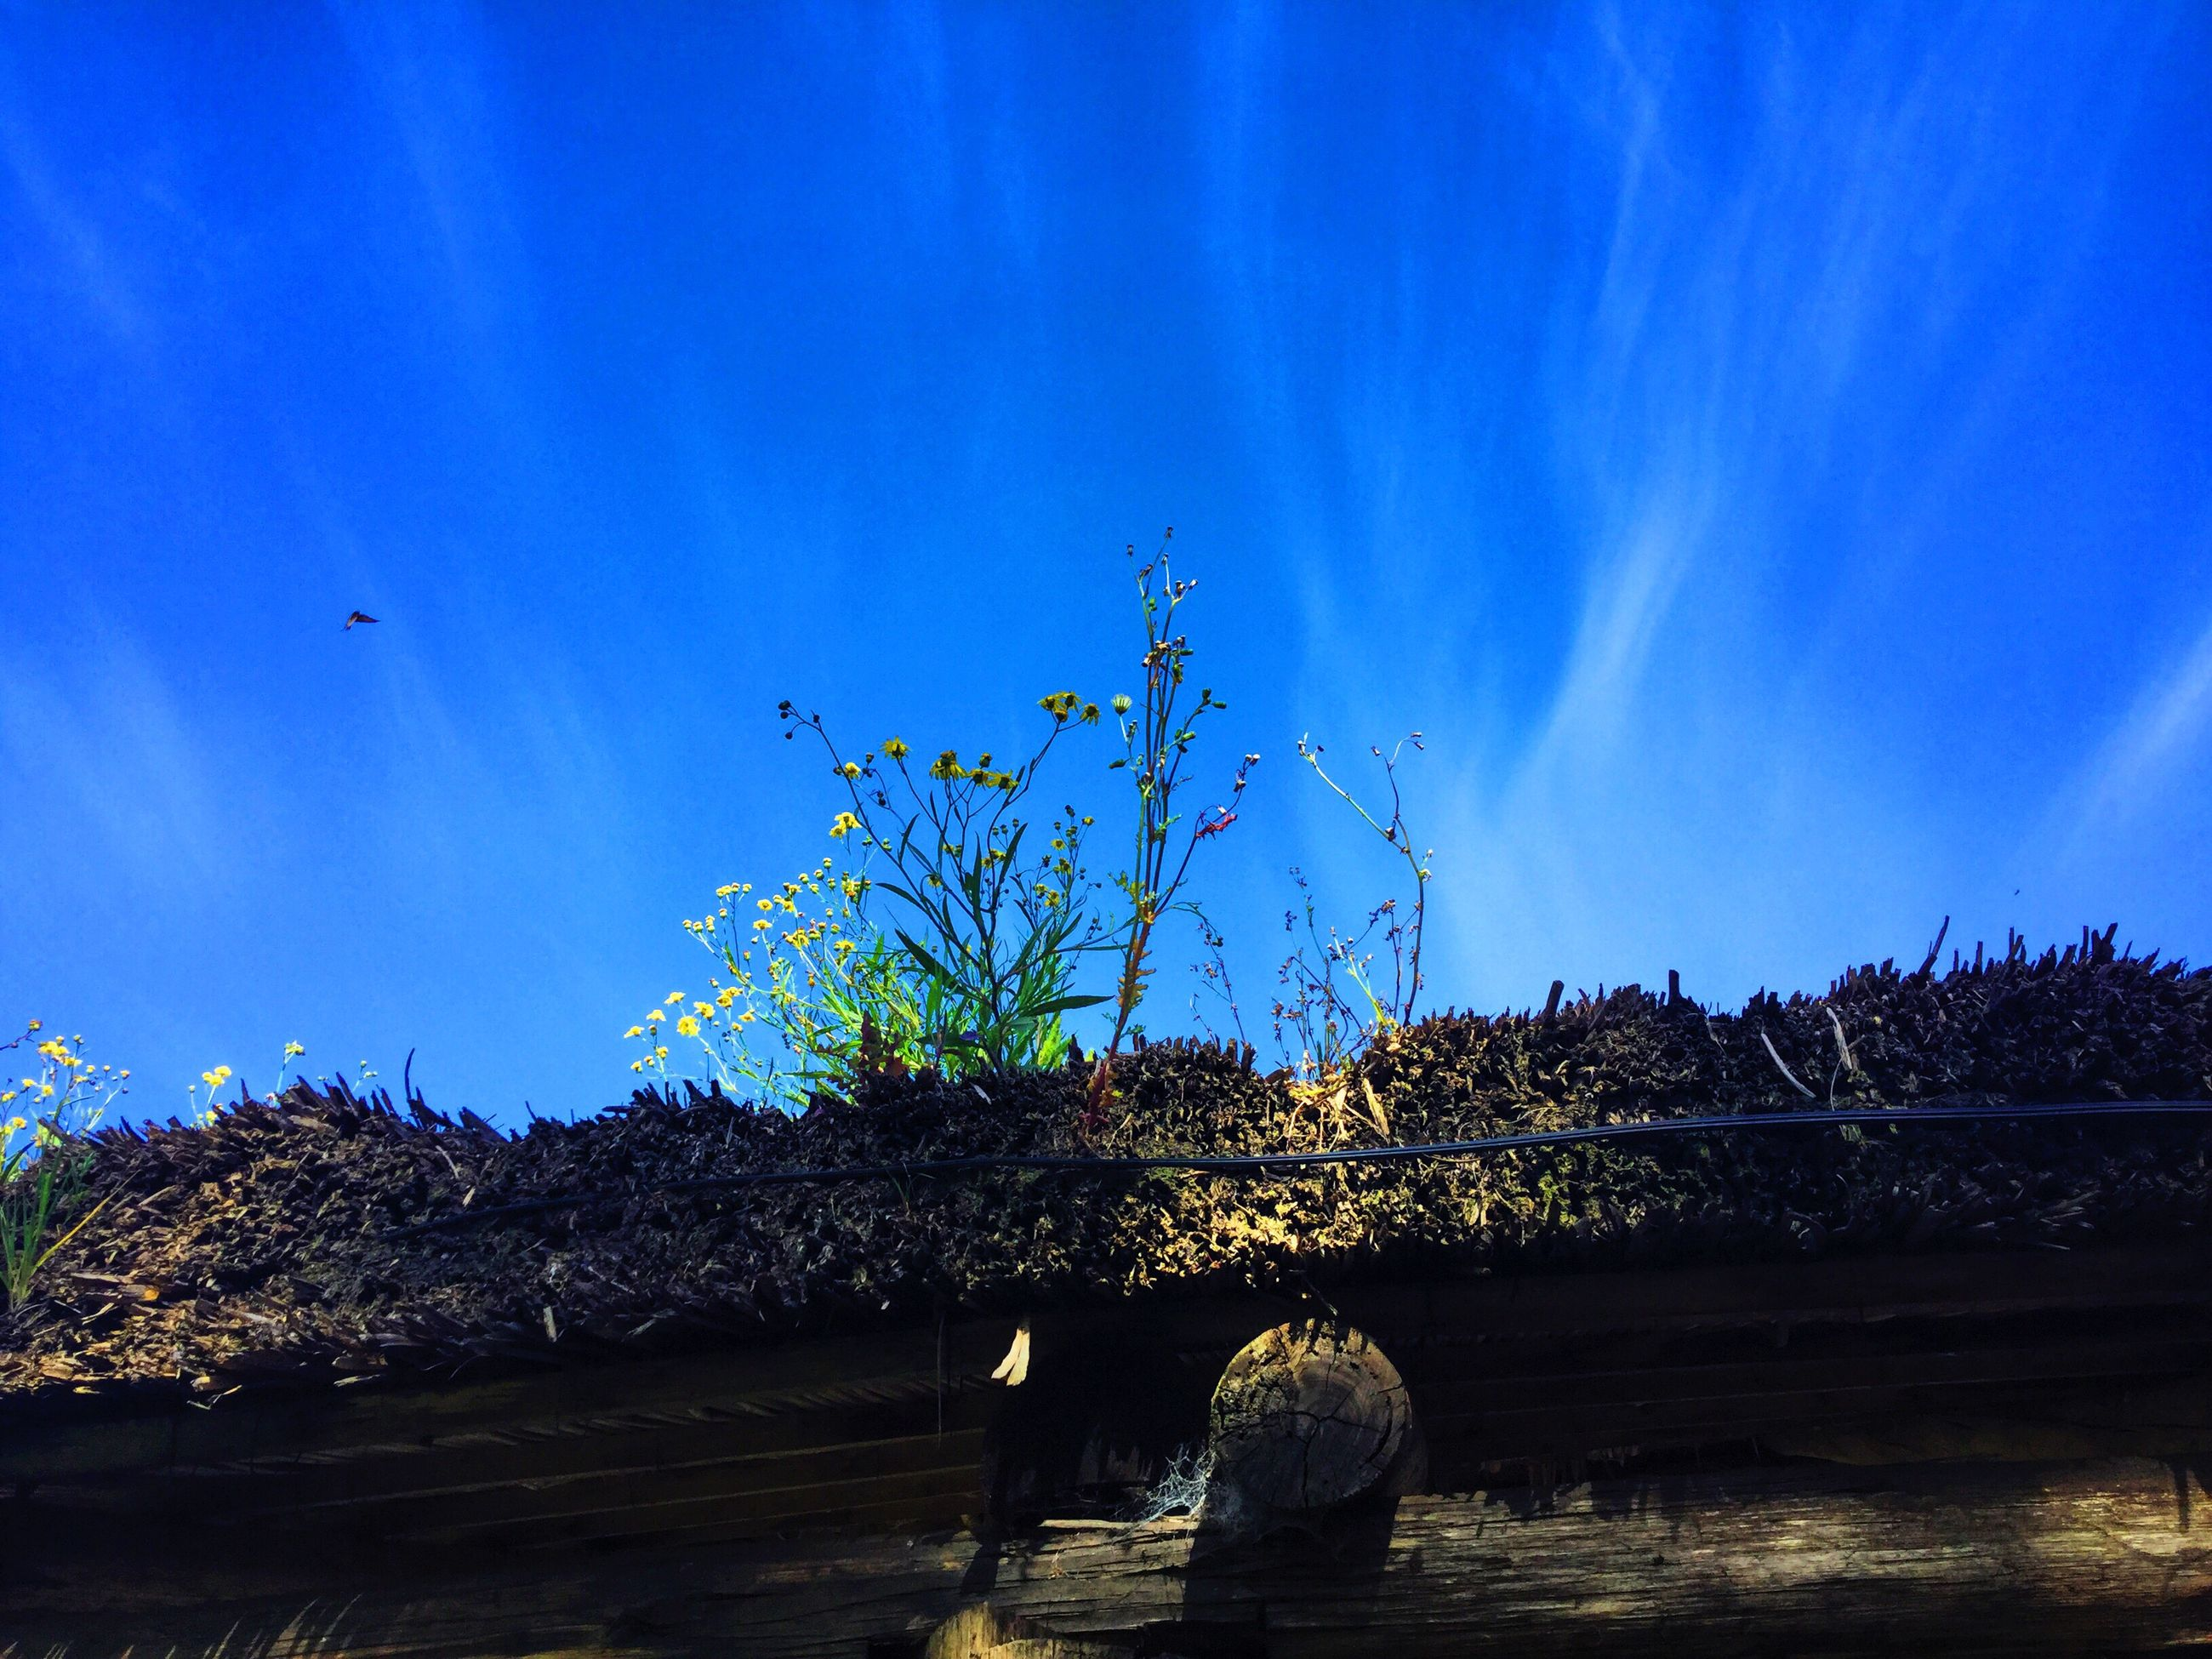 blue, low angle view, tranquility, sky, tranquil scene, nature, growth, plant, scenics, sunbeam, day, outdoors, non-urban scene, beauty in nature, distant, tourism